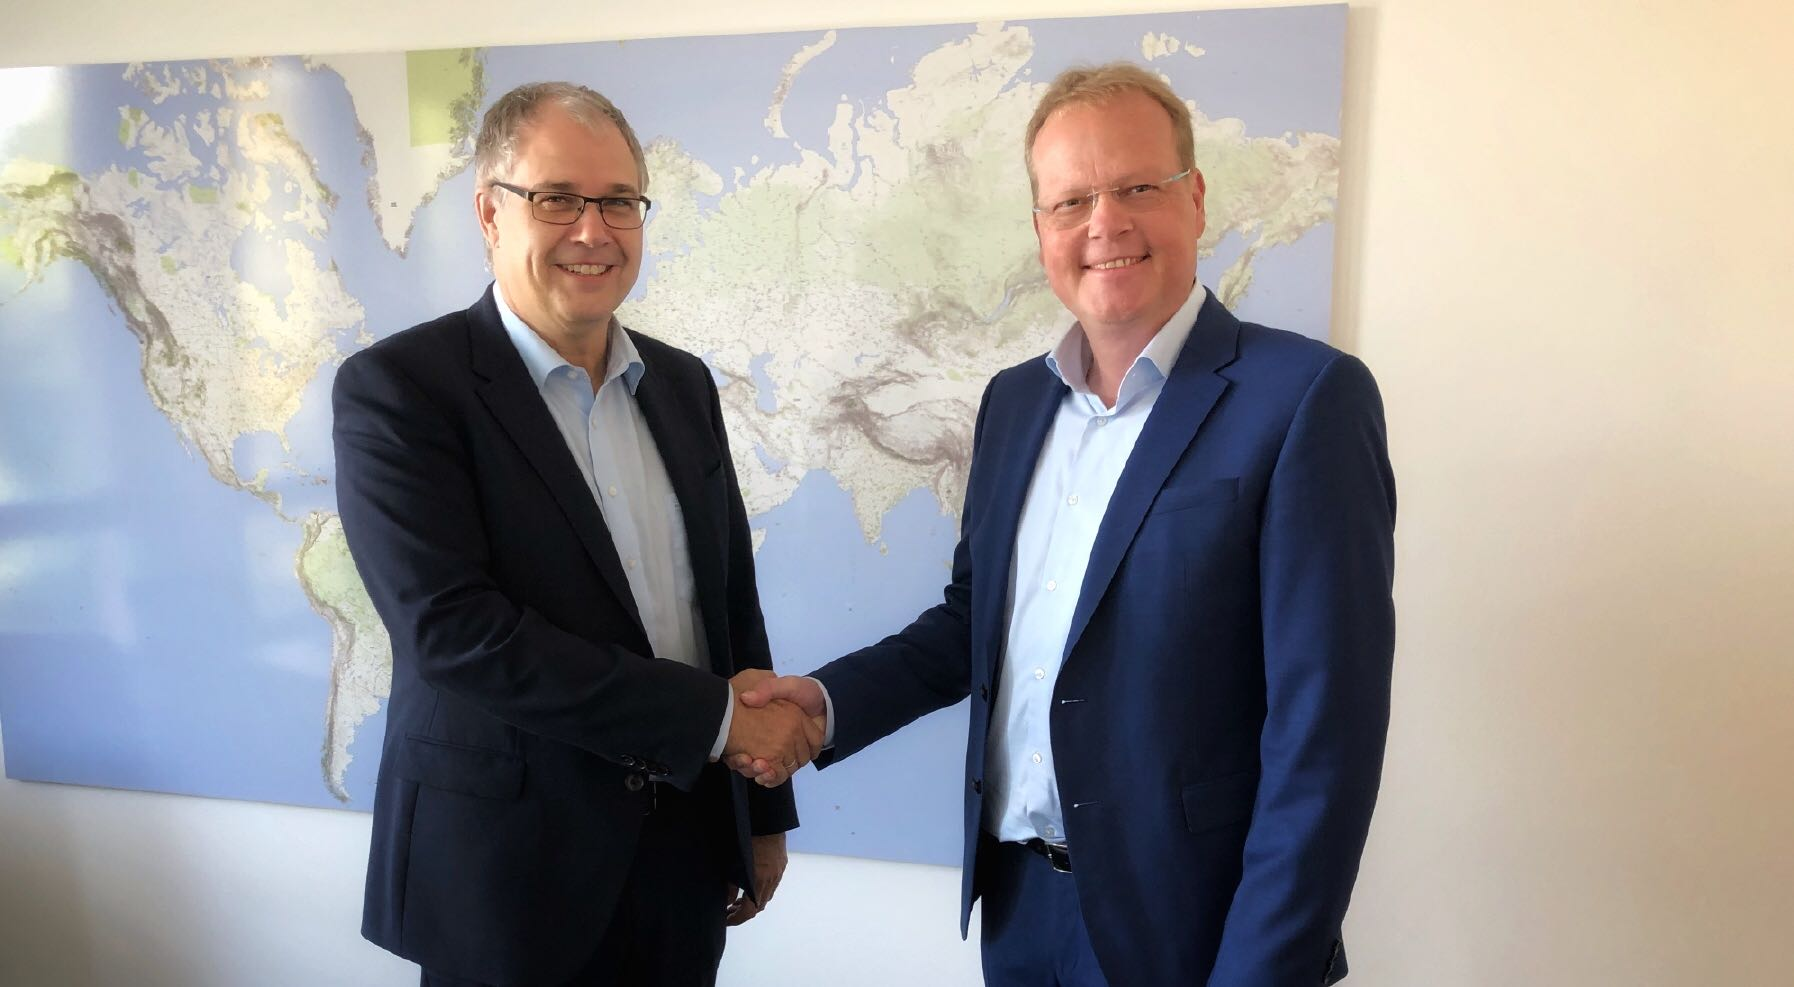 BAUER Spezialtiefbau GmbH concludes a framework contract with fielddata.io GmbH